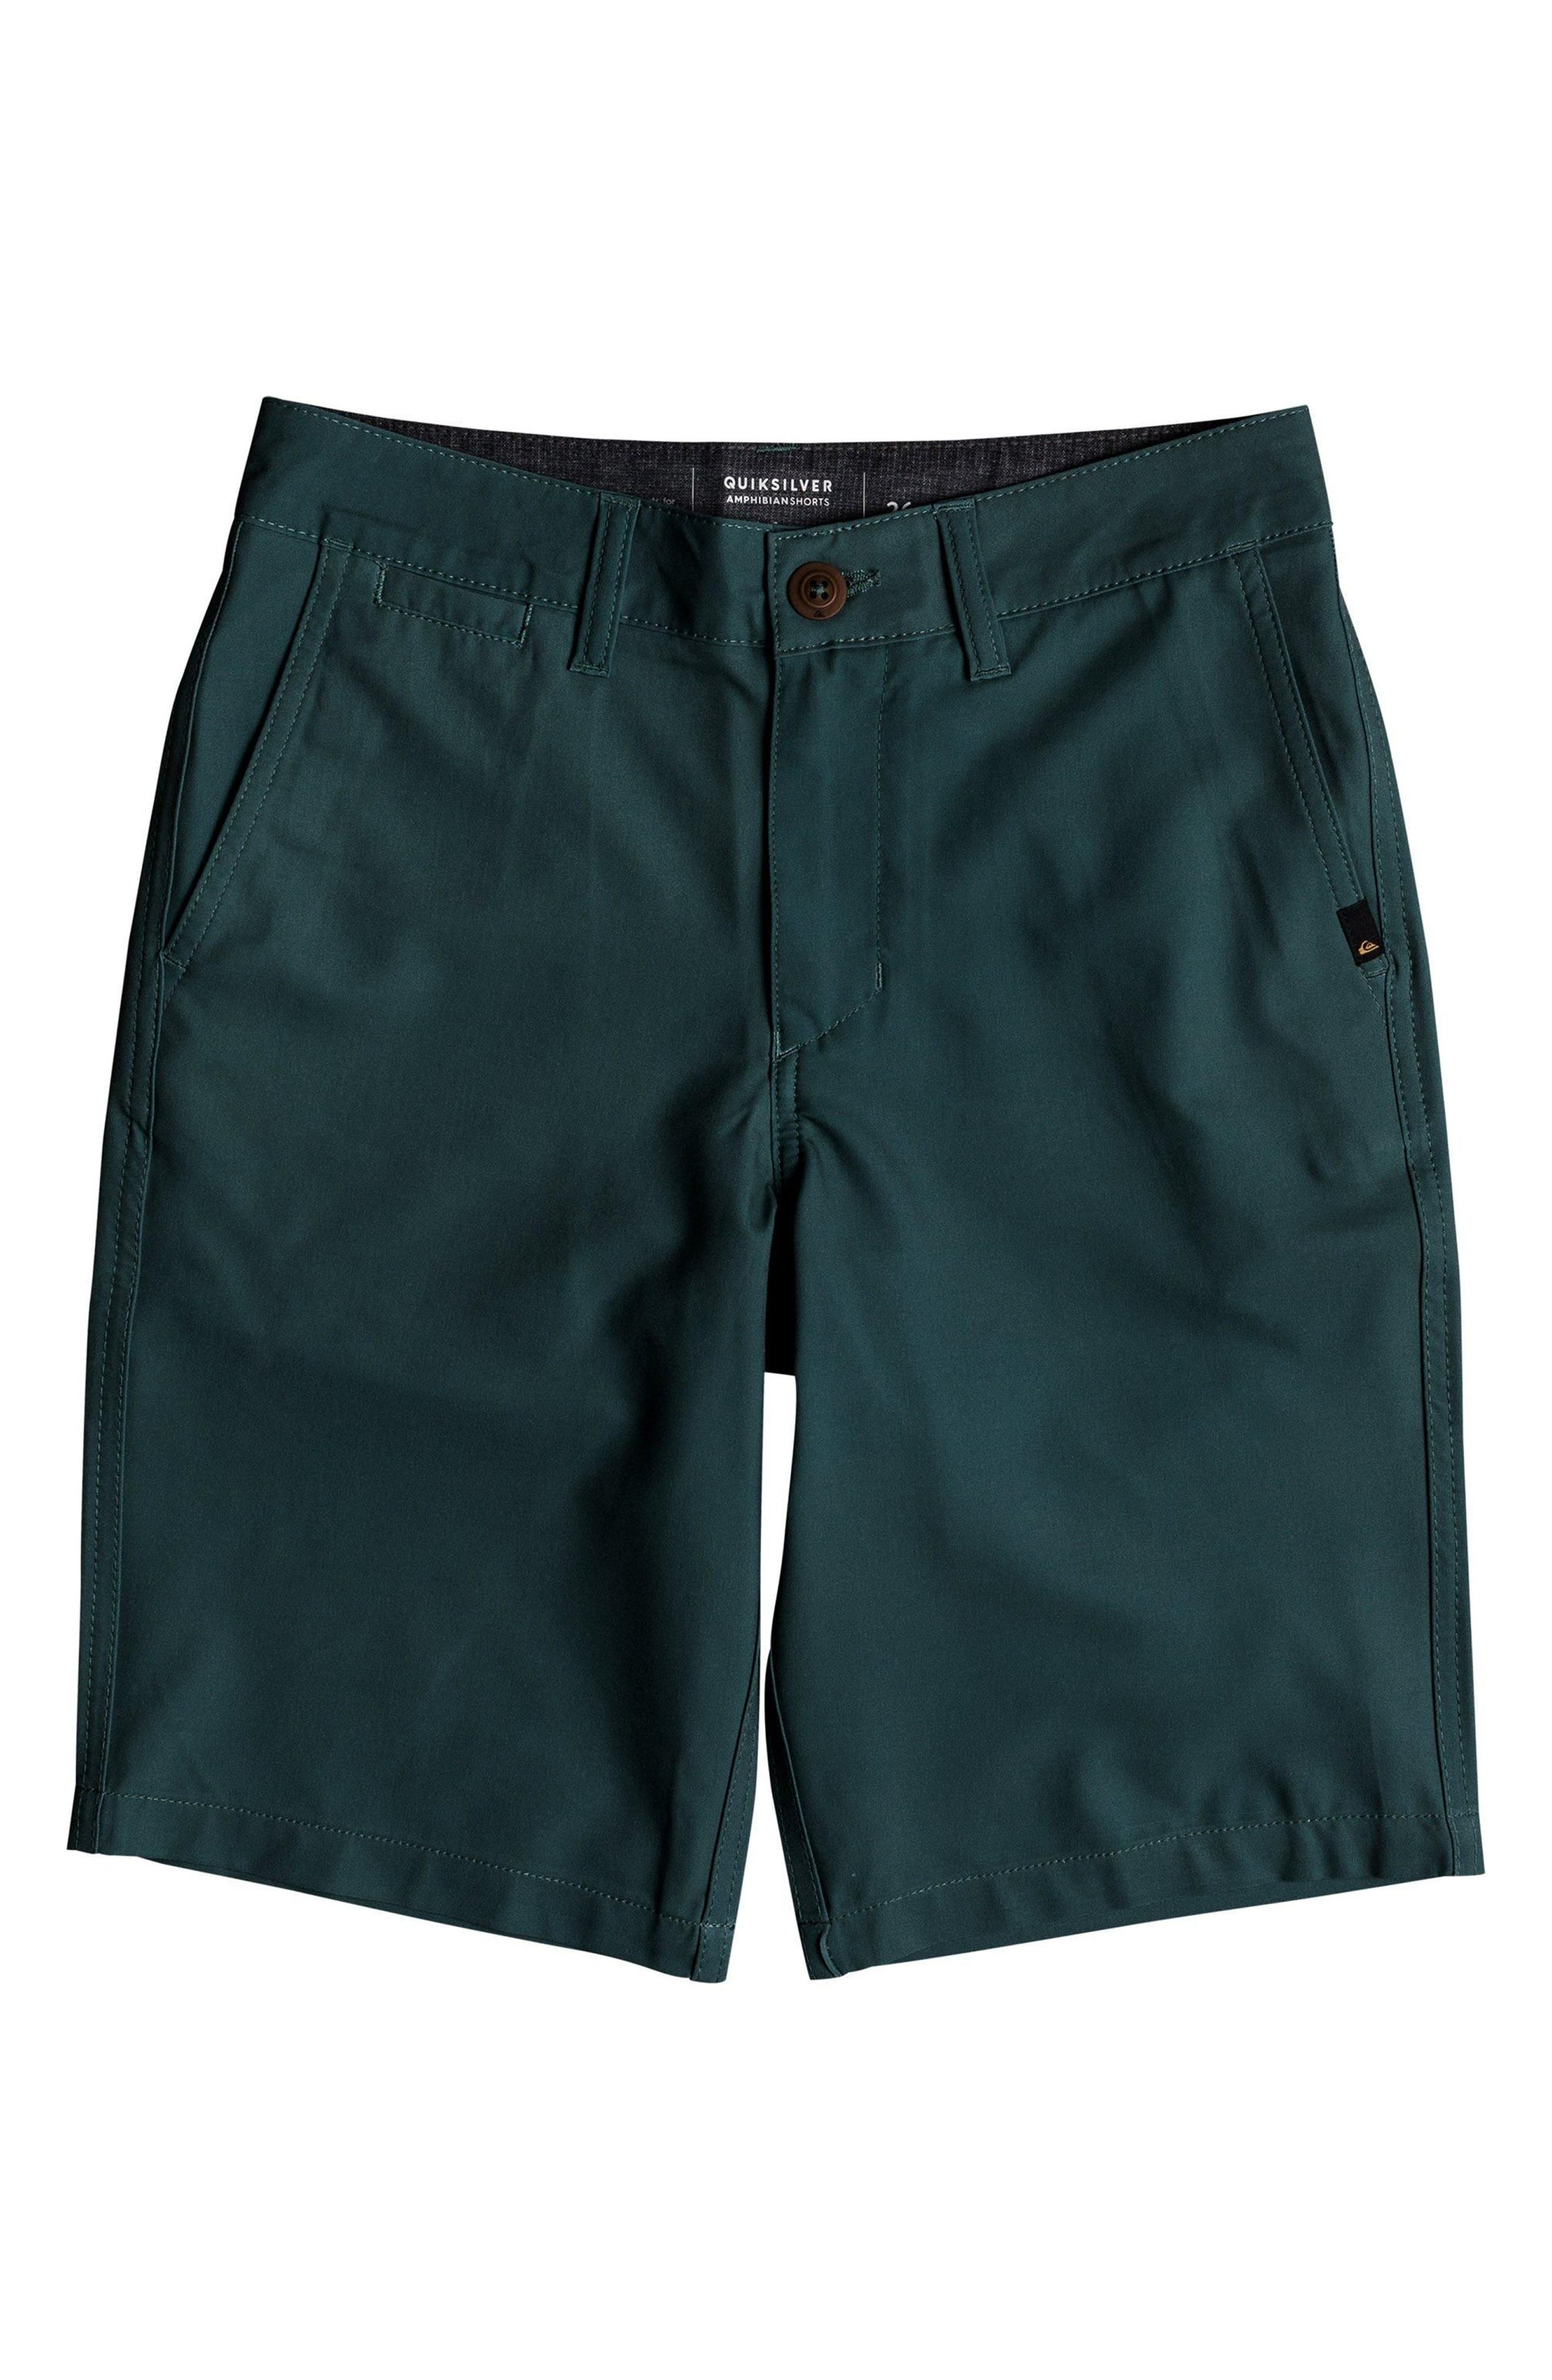 Union Amphibian Hybrid Shorts,                             Main thumbnail 2, color,